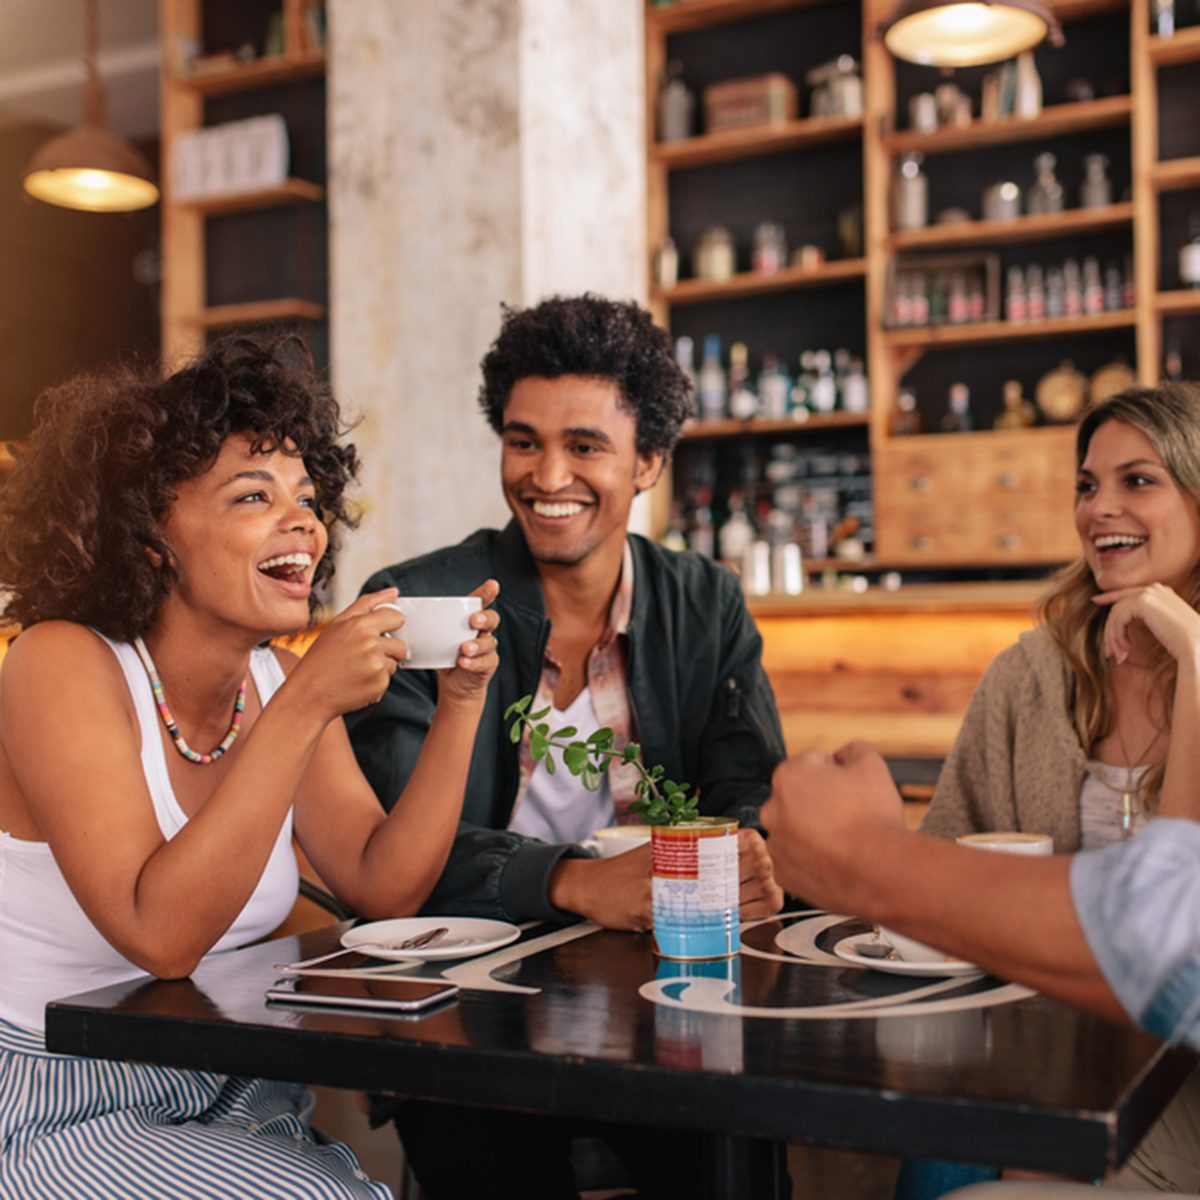 Young friends having a great time in restaurant. Multiracial group of young people sitting in a coffee shop and smiling.; Shutterstock ID 661377859